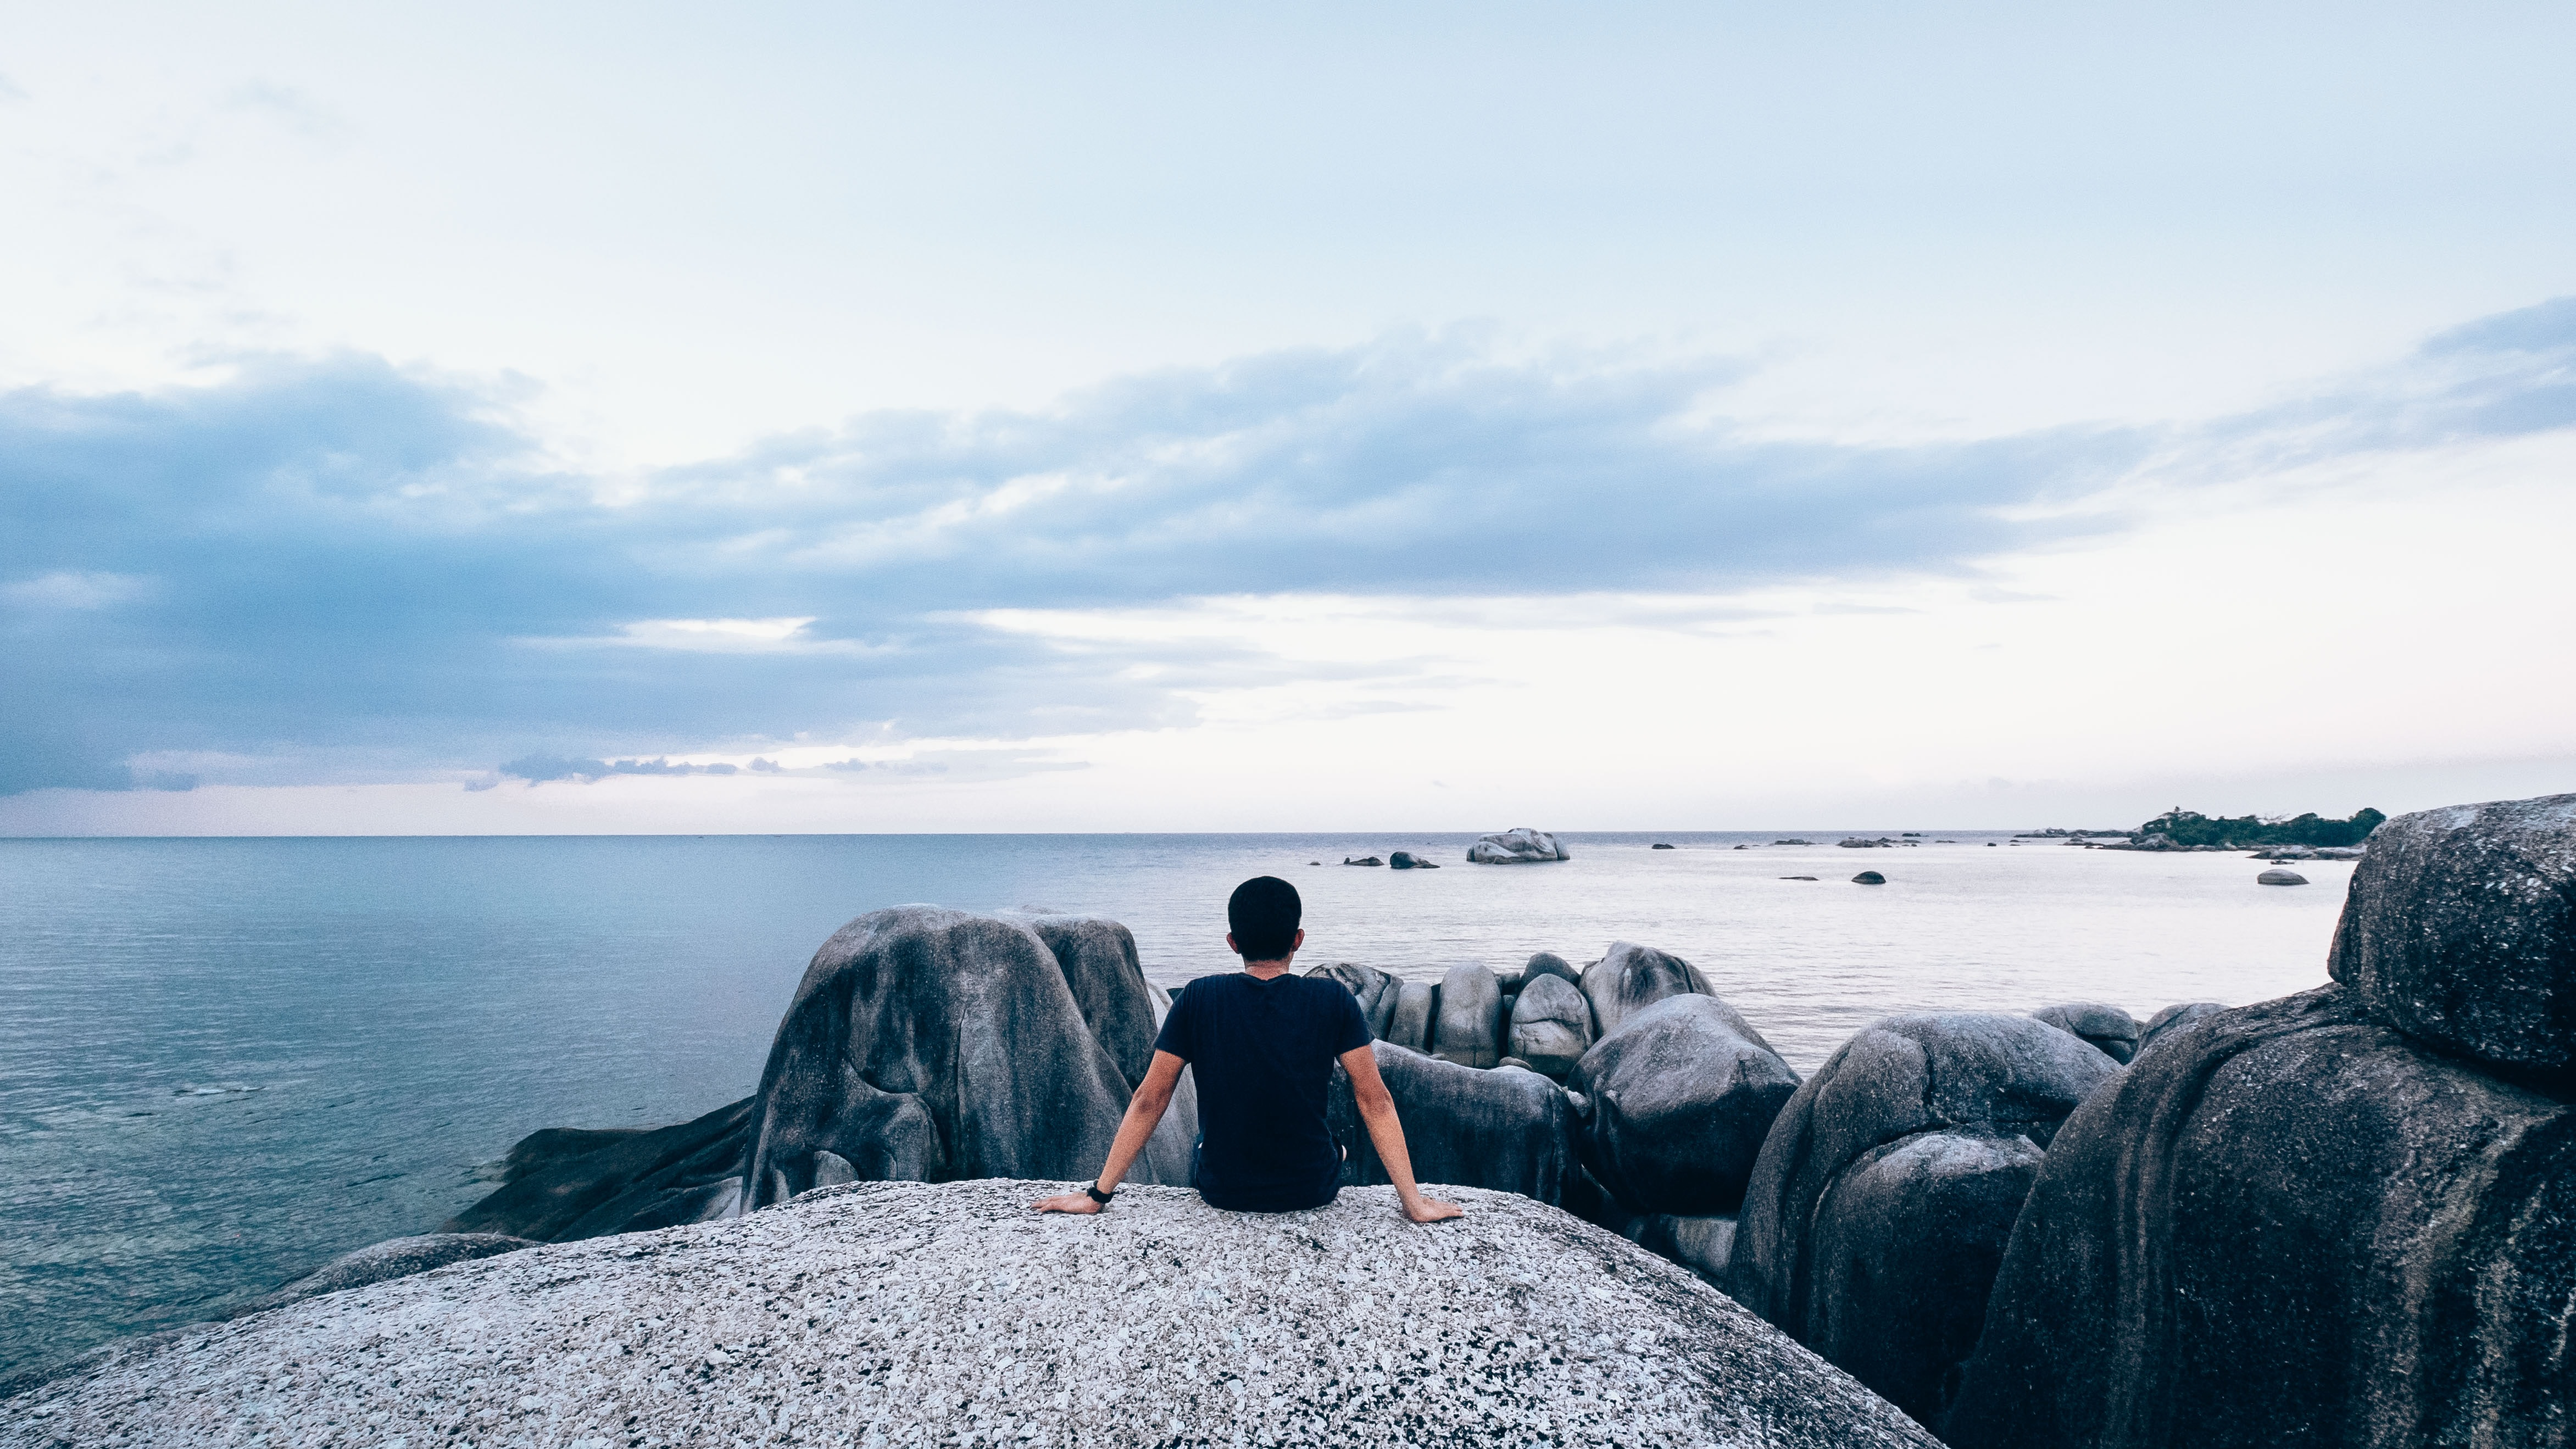 A man sits on a rock, overlooking rocks and the ocean, into the horizon.